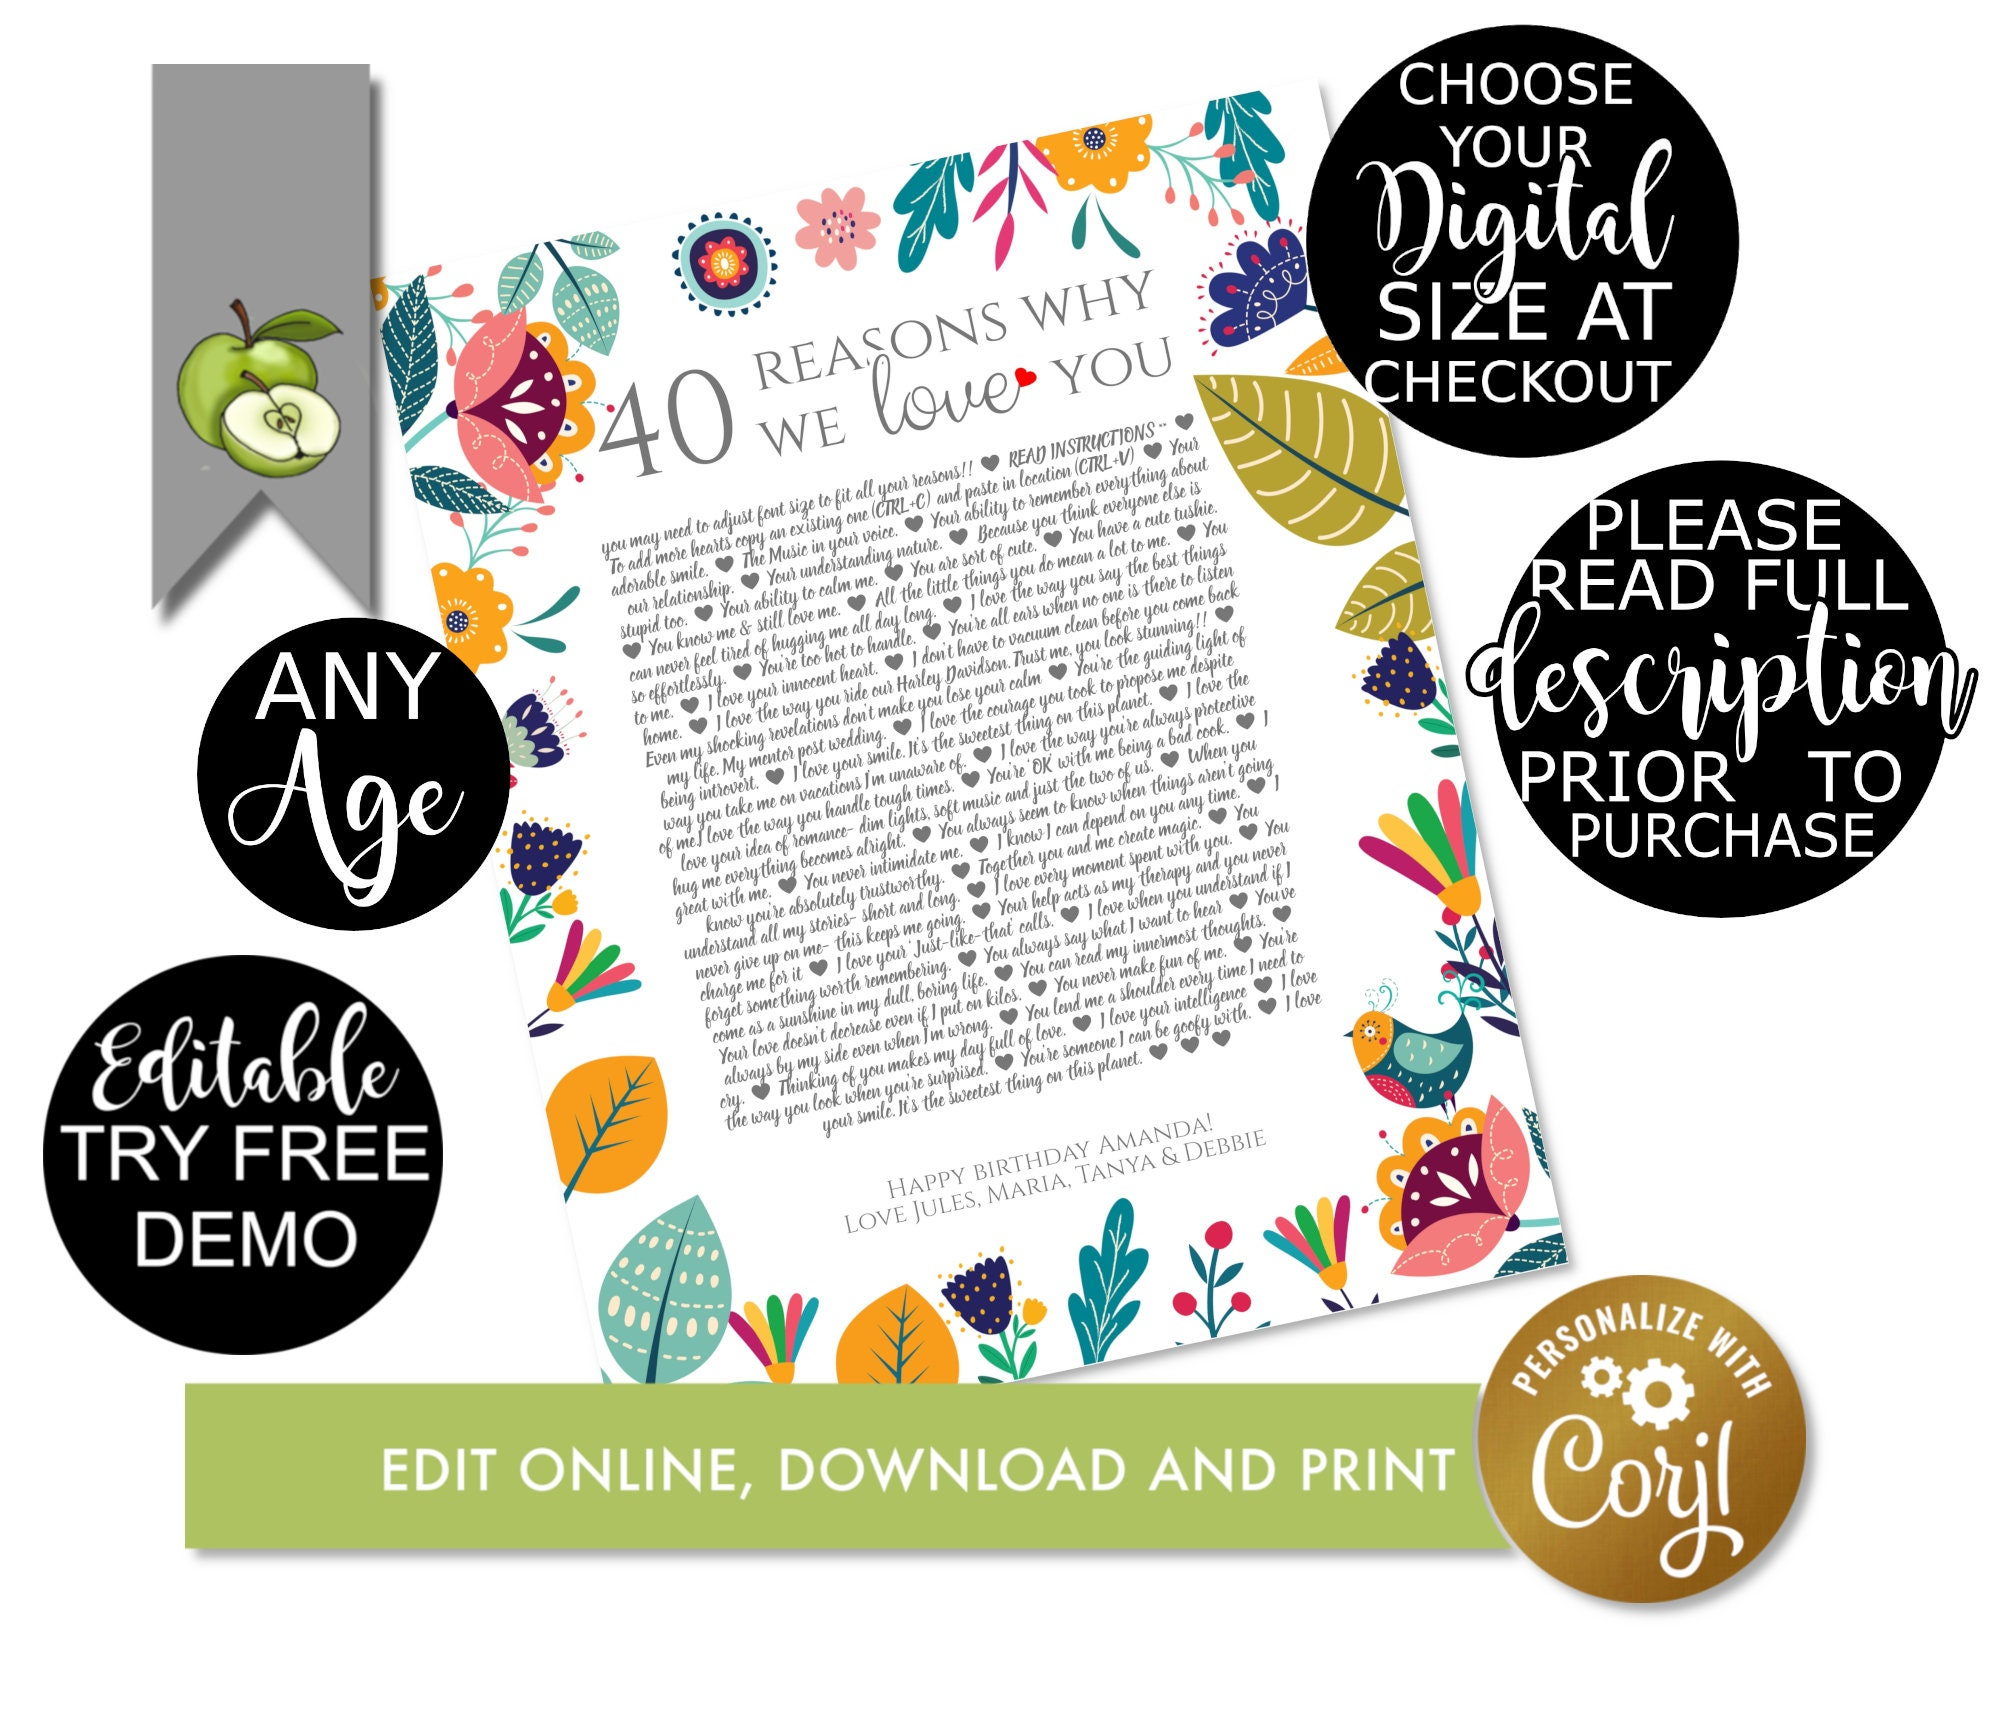 40 Reasons We Love You 40 Things We Love About You 40th Birthday Editable Template Printable Digital Download Memories Love You S9 Q2